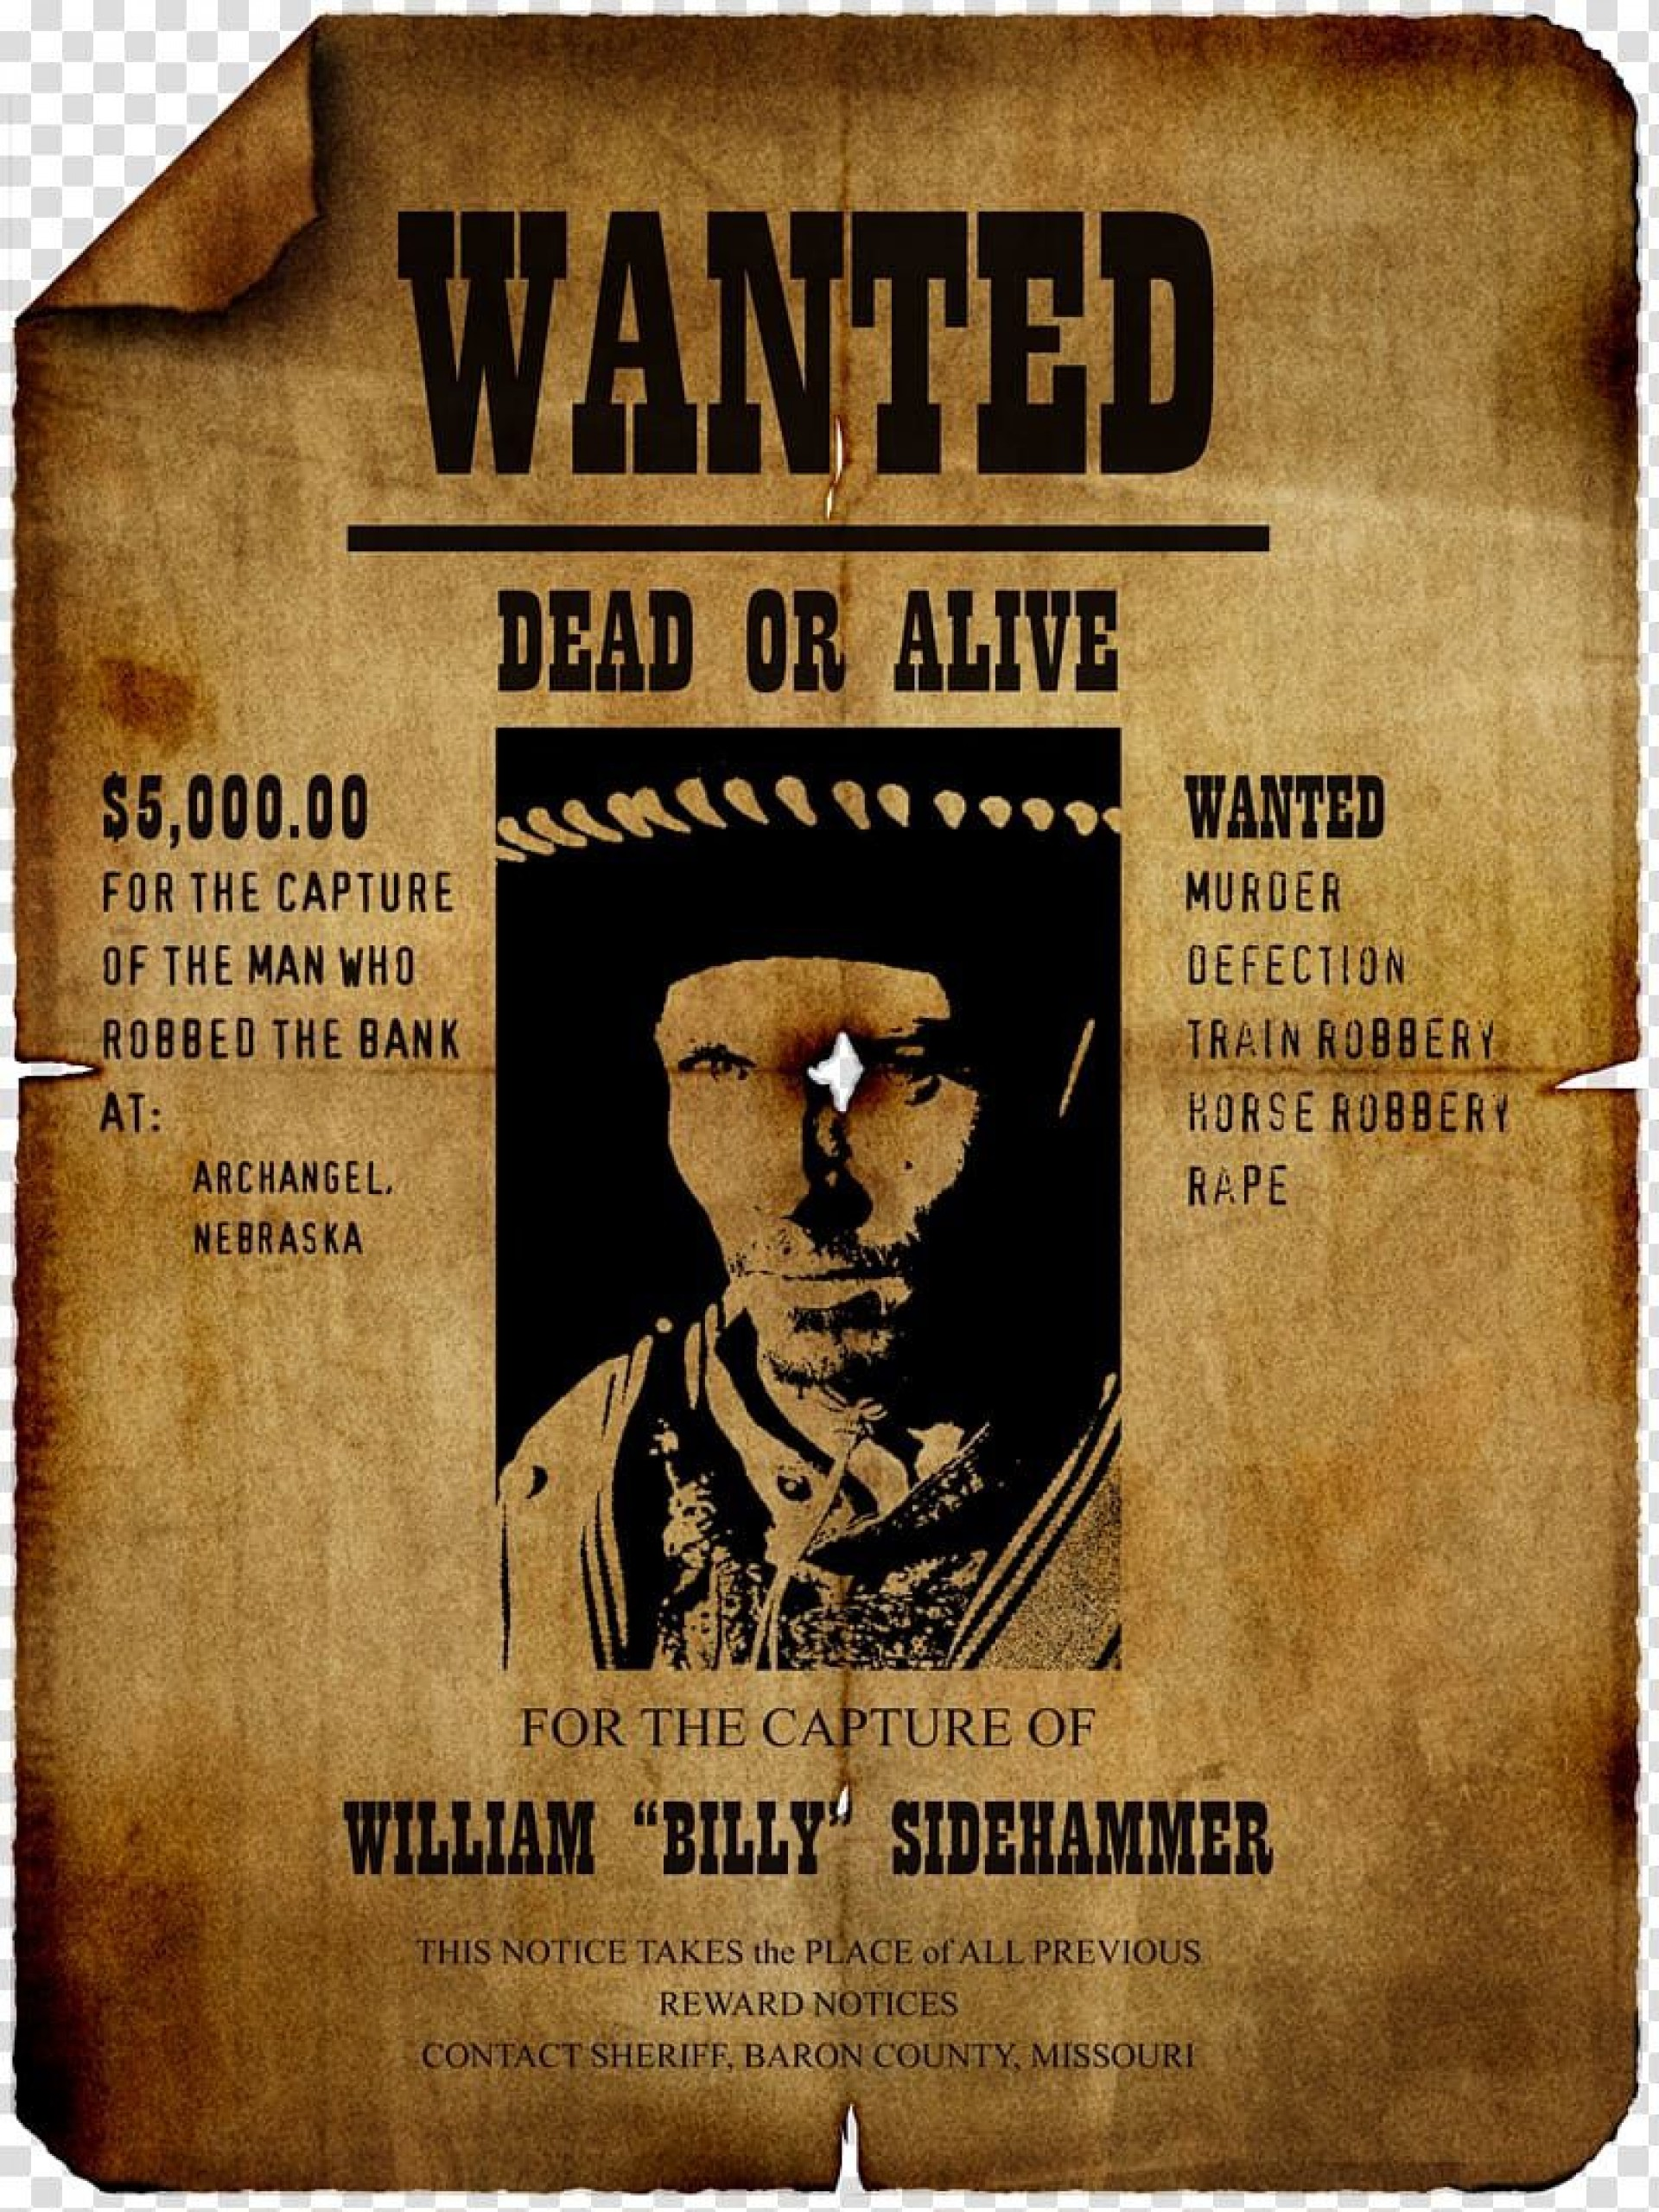 008 Stunning Wanted Poster Template Microsoft Word High Resolution  Western Most1920